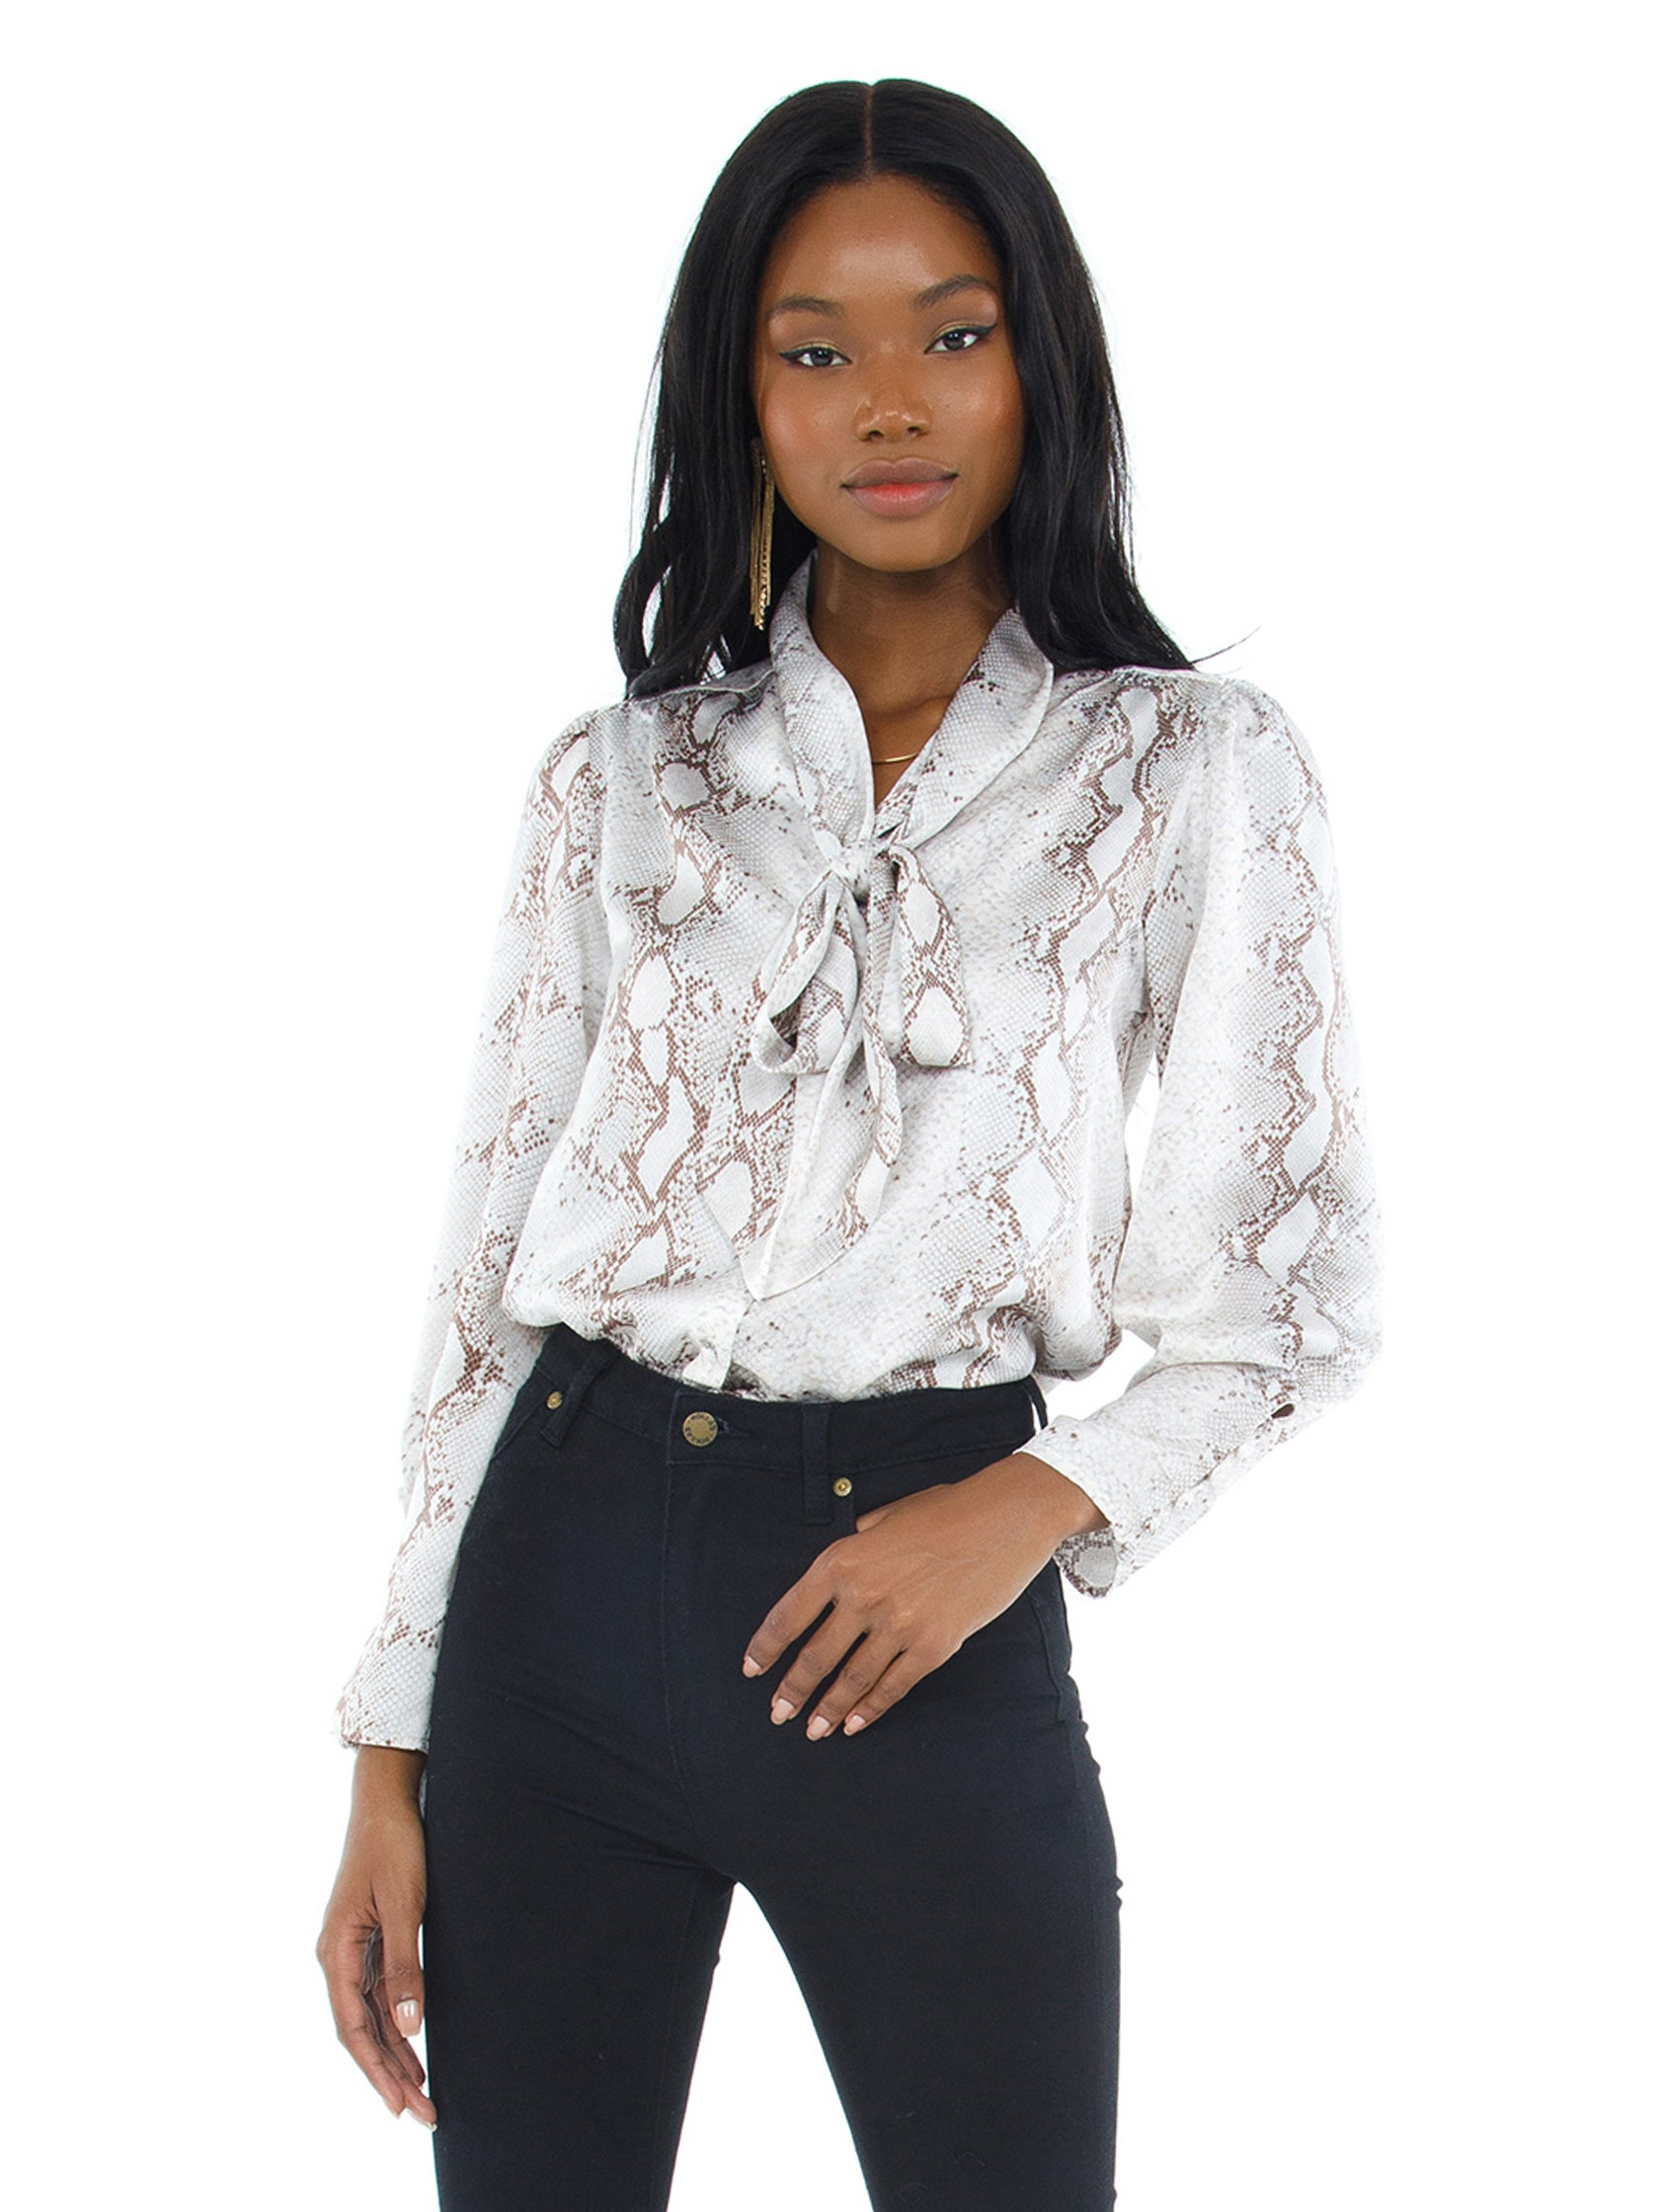 Girl outfit in a top rental from Bishop + Young called Tie Neck Blouse